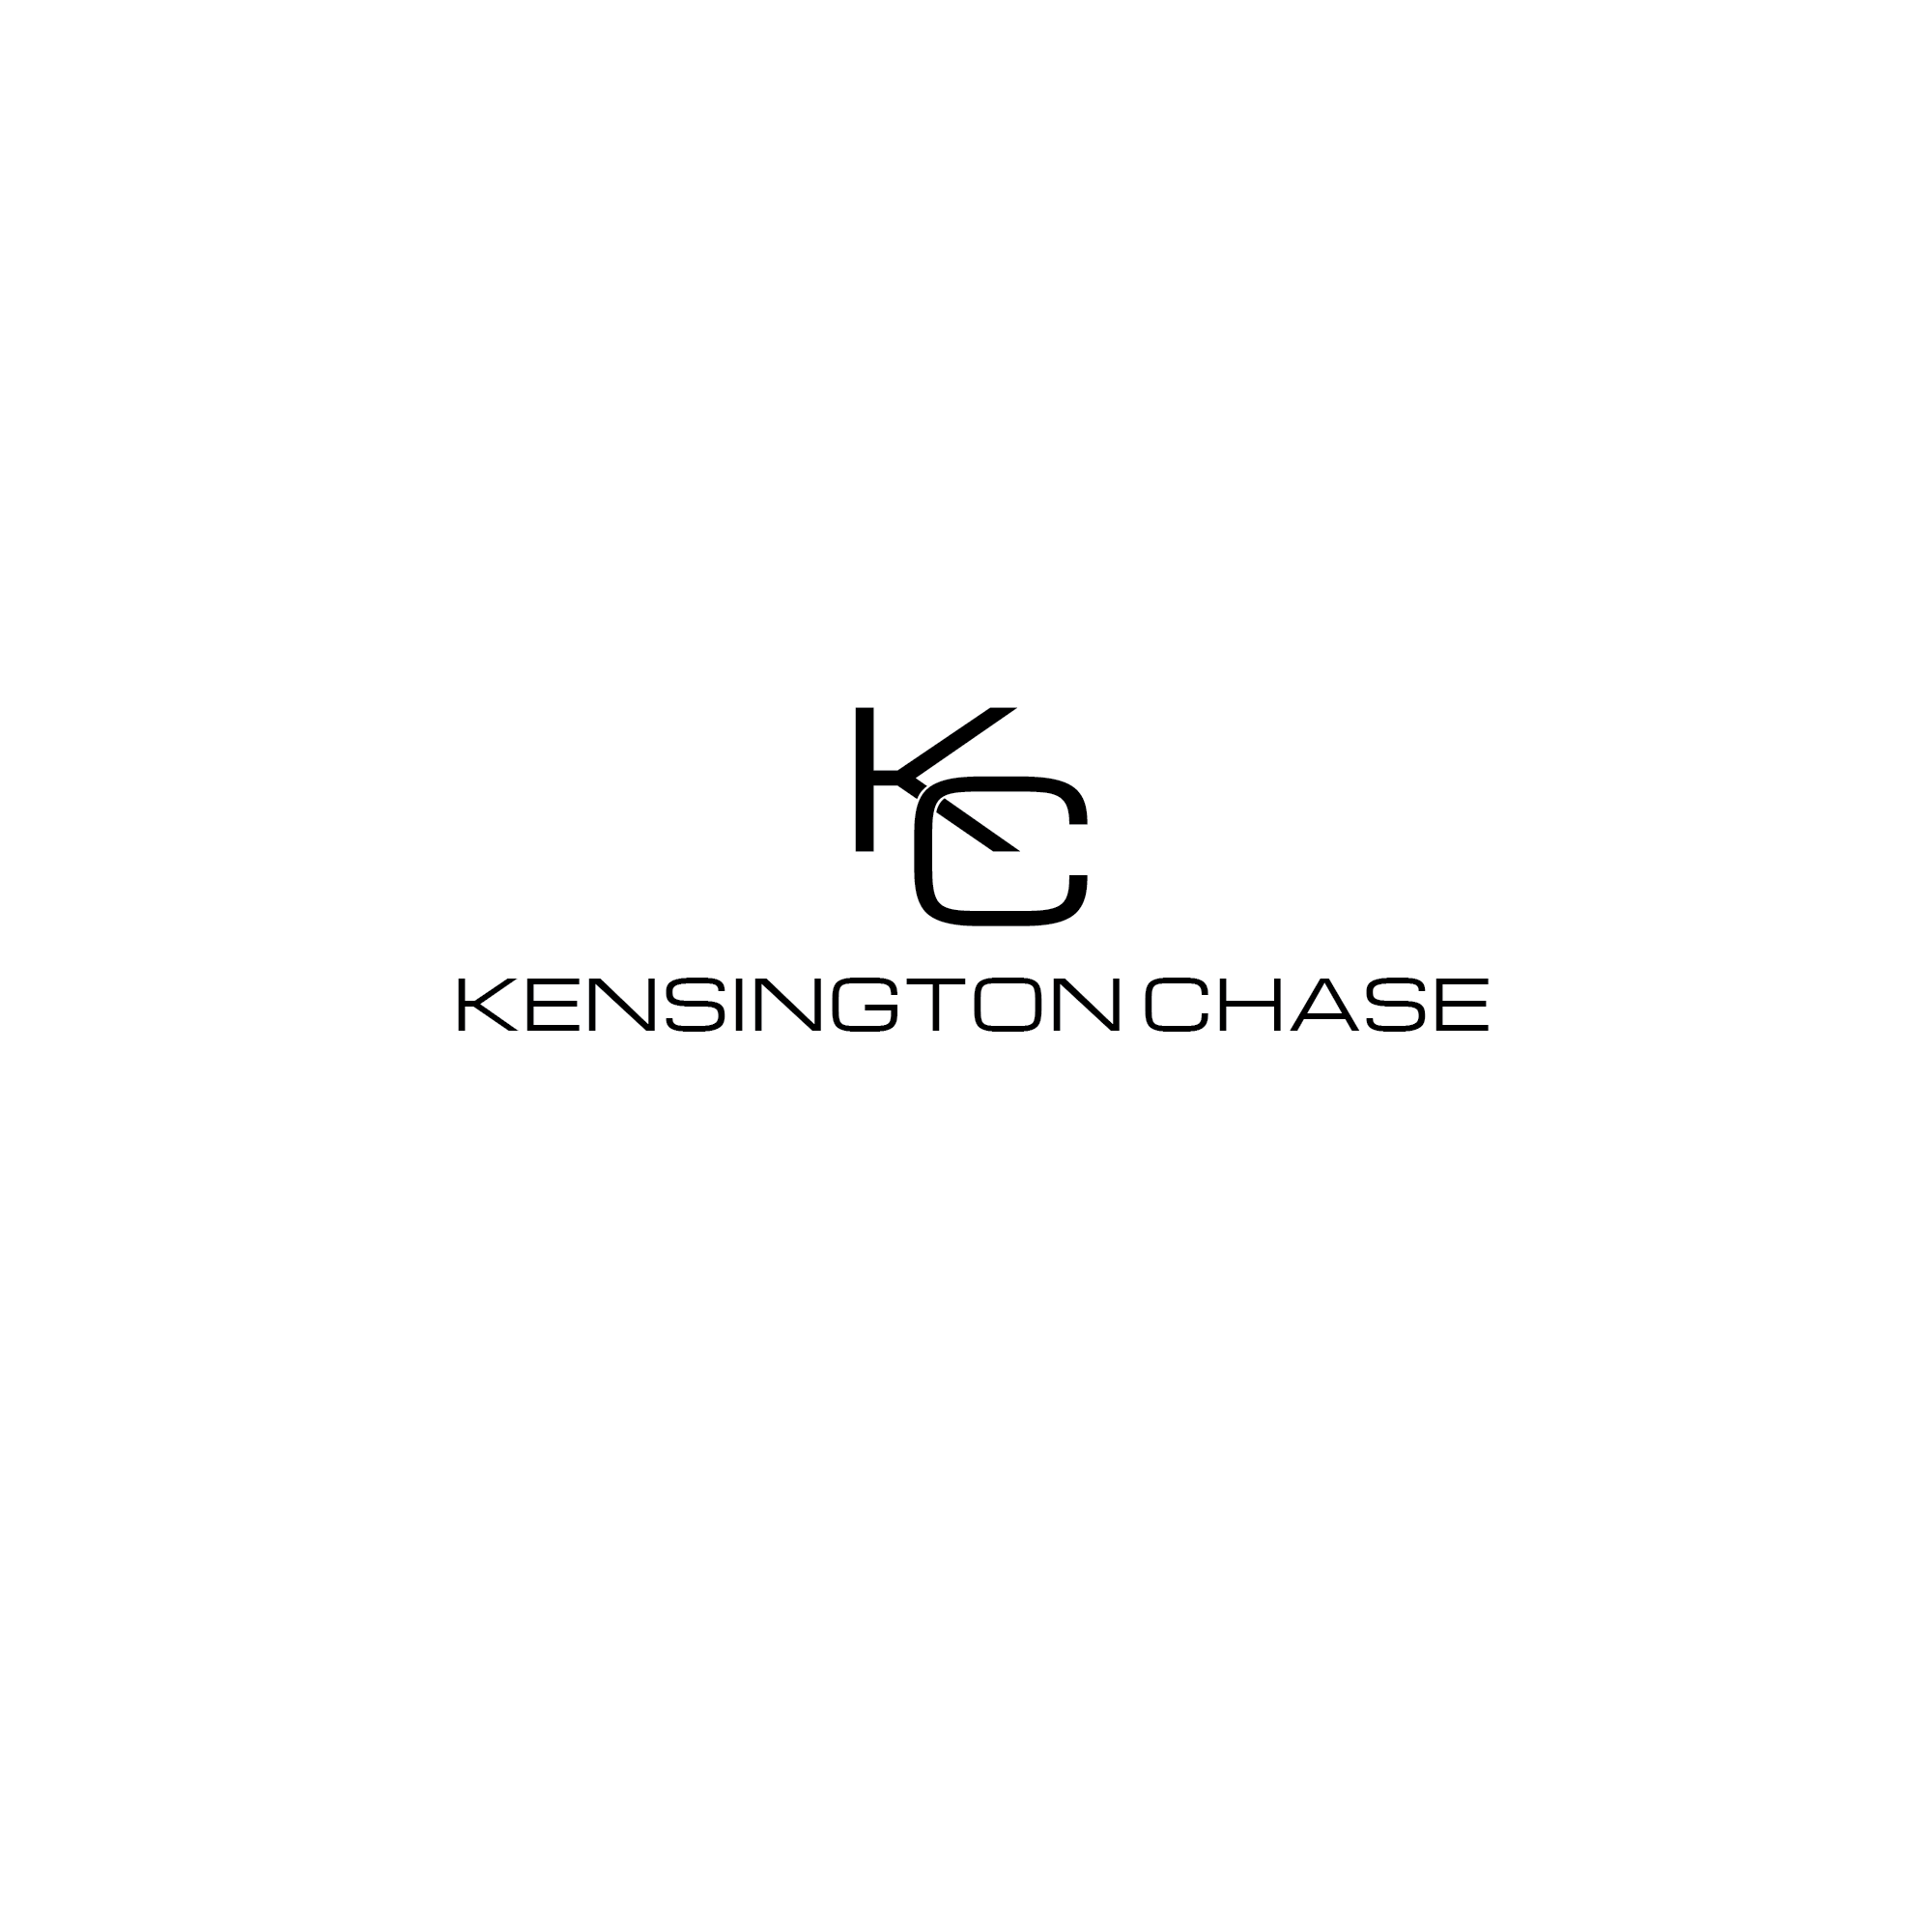 Logo Design by 354studio - Entry No. 53 in the Logo Design Contest Kensington Chase  Logo Design.